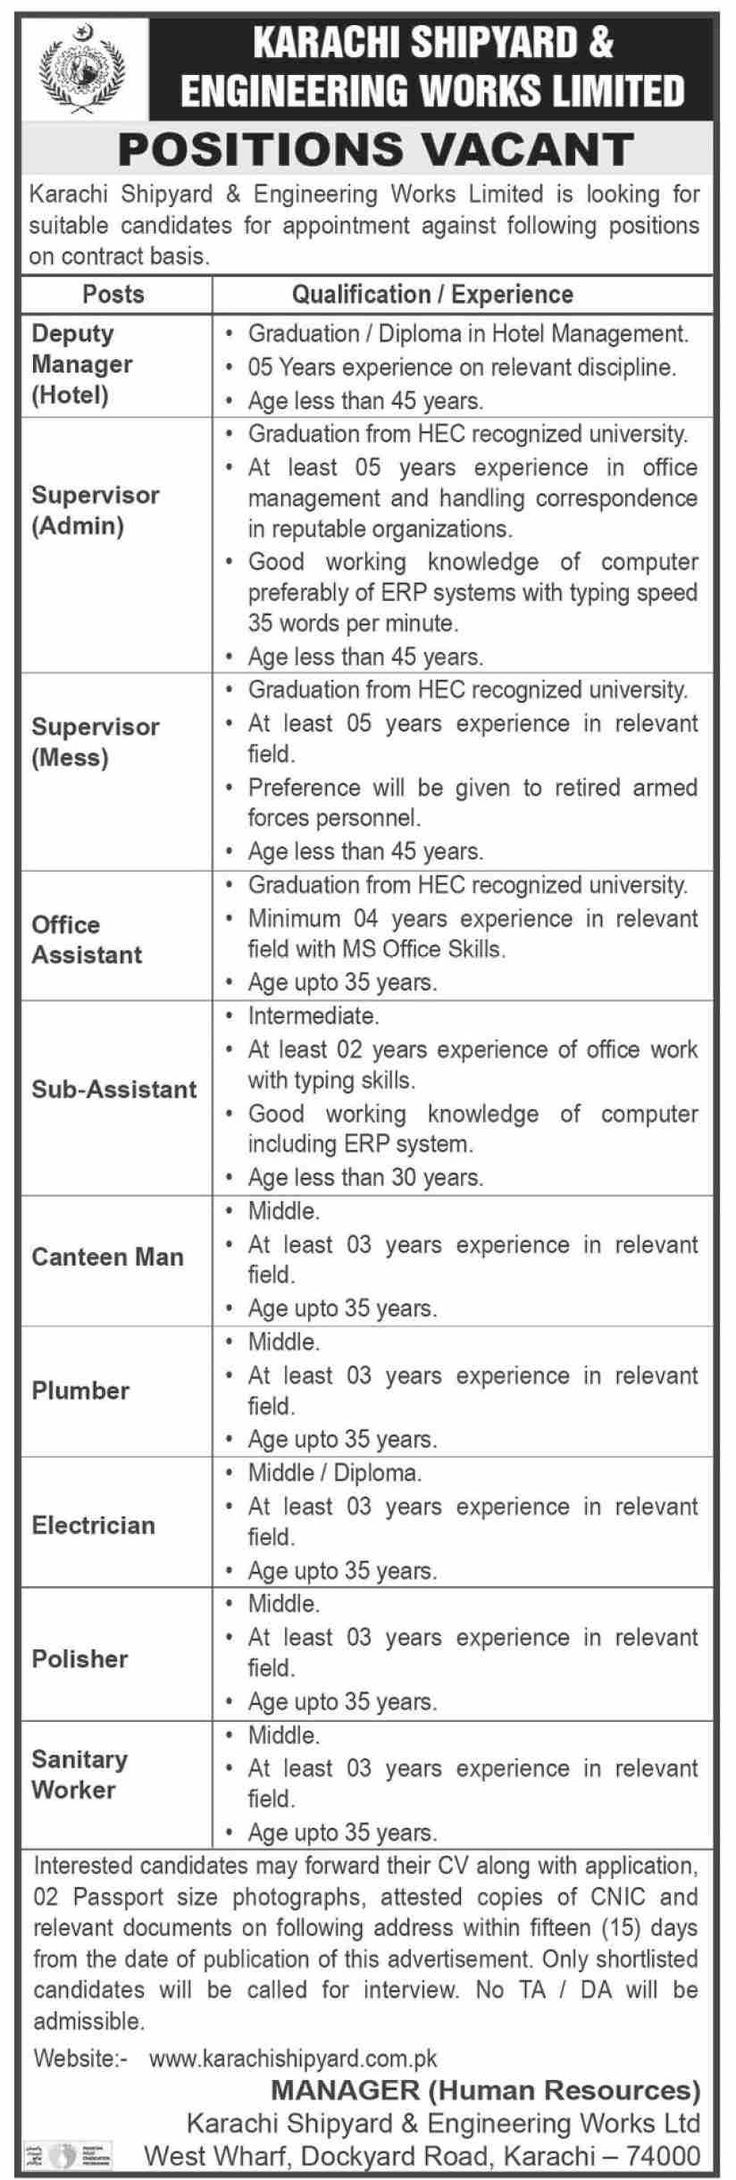 Karachi Shipyard And Engineering Works Limited Jobs 2021 Latest